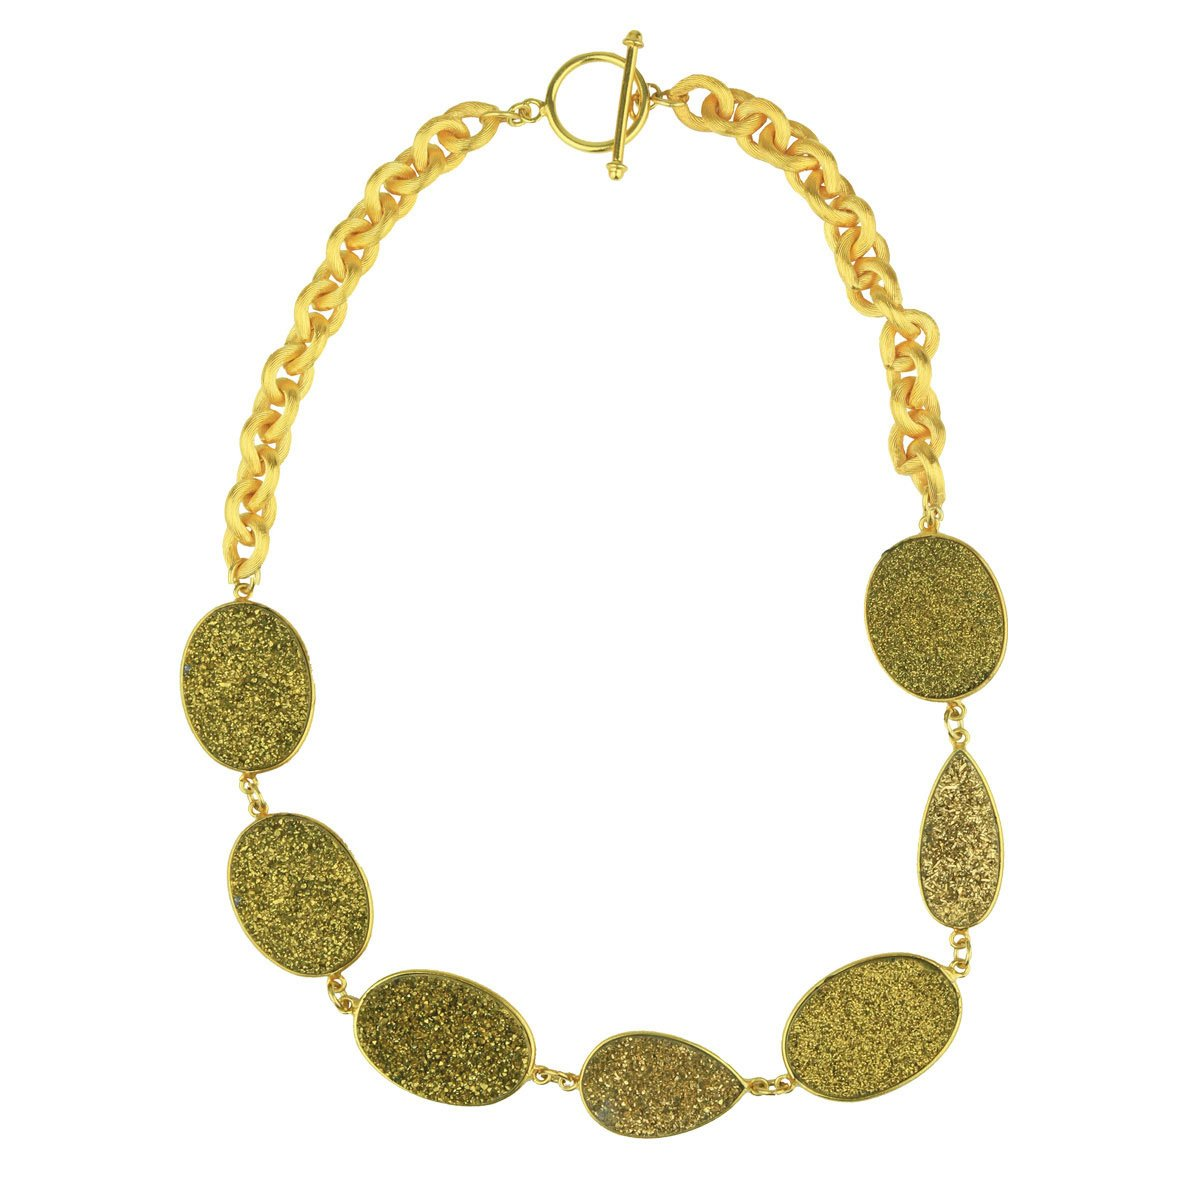 Hera Gold Druzy Agate Short Necklace